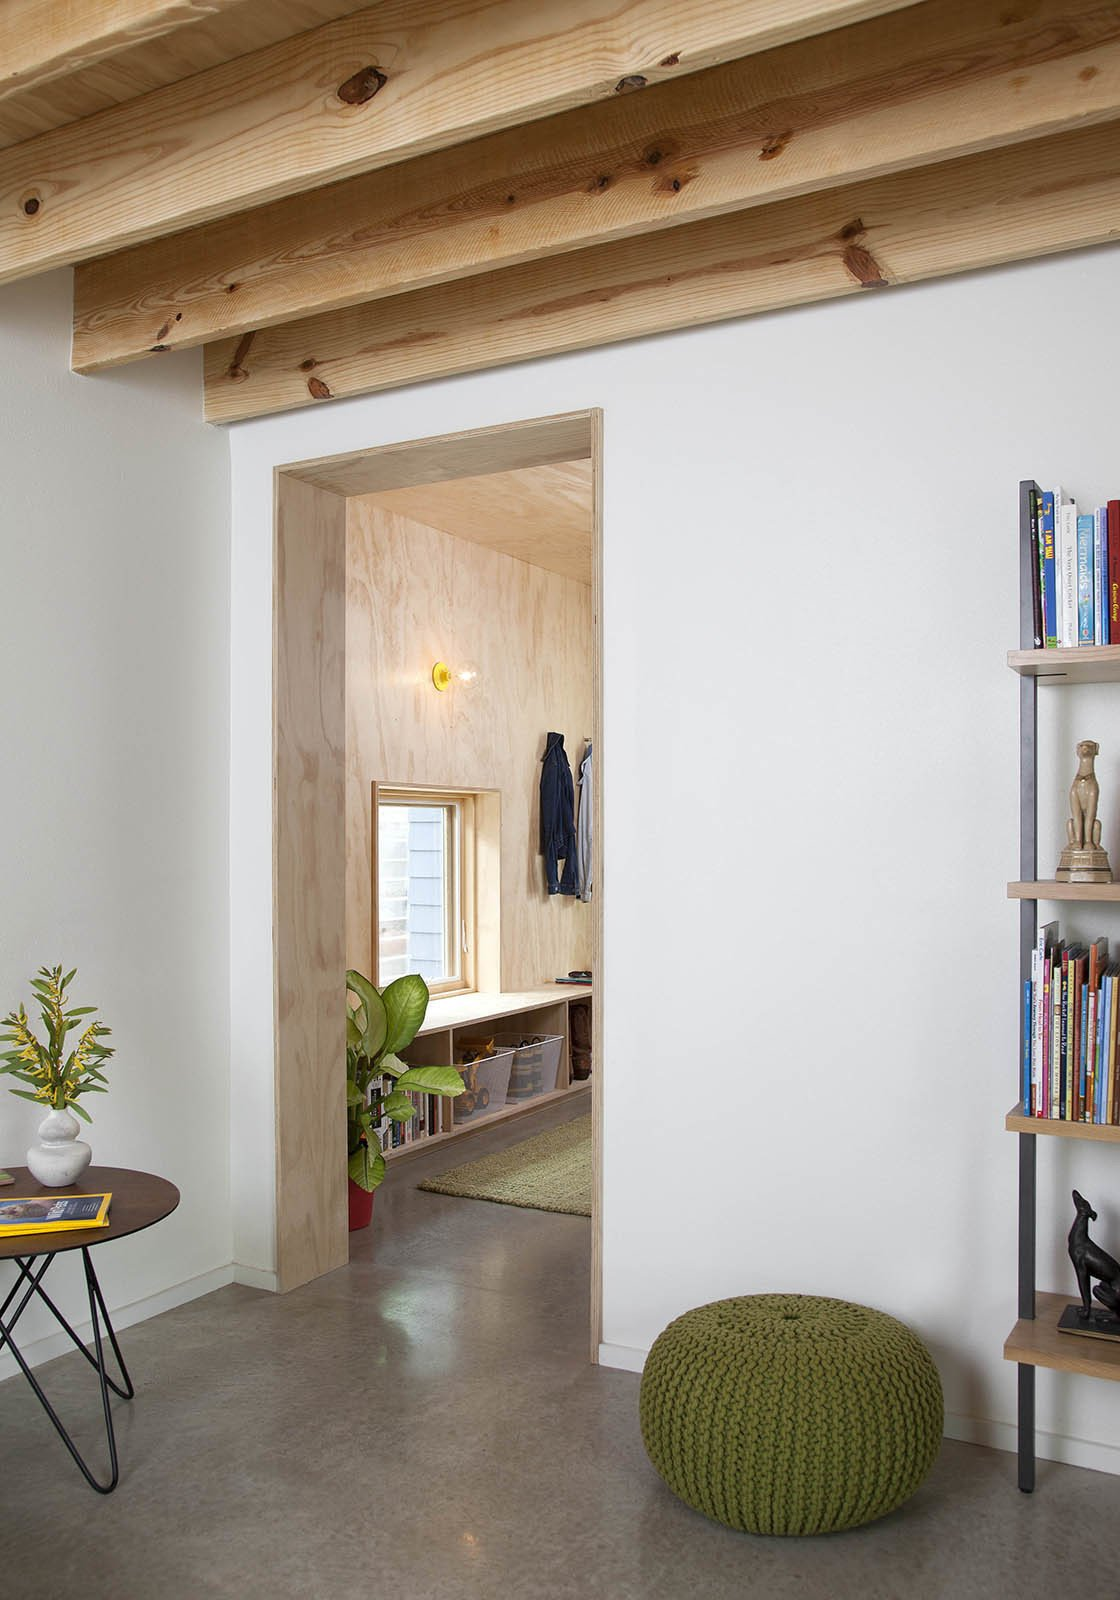 """""""One thing that is highlighted by this project—and what I'm most interested in—is creating great architecture for limited means,"""" Guess says. """"When someone comes to me with constraints, I always feel like there's a better outcome in the end."""" The pouf, side table, and bookshelf are from CB2.  127+ Inspiring Interior Ideas from Inviting Kitchen Built on a Tight Budget"""